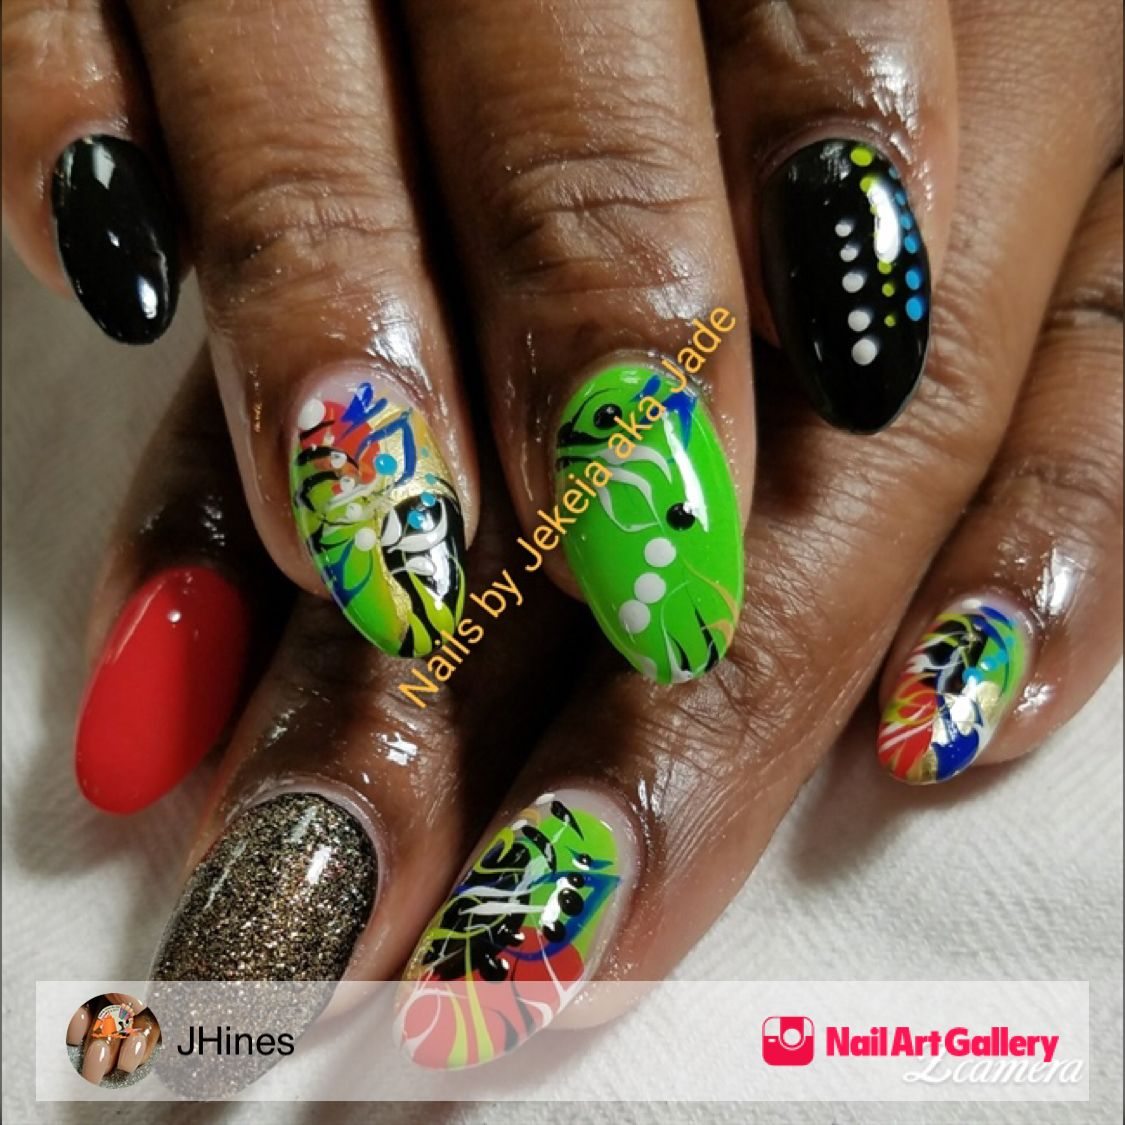 Pin by denise soto on nails pinterest nail art galleries and